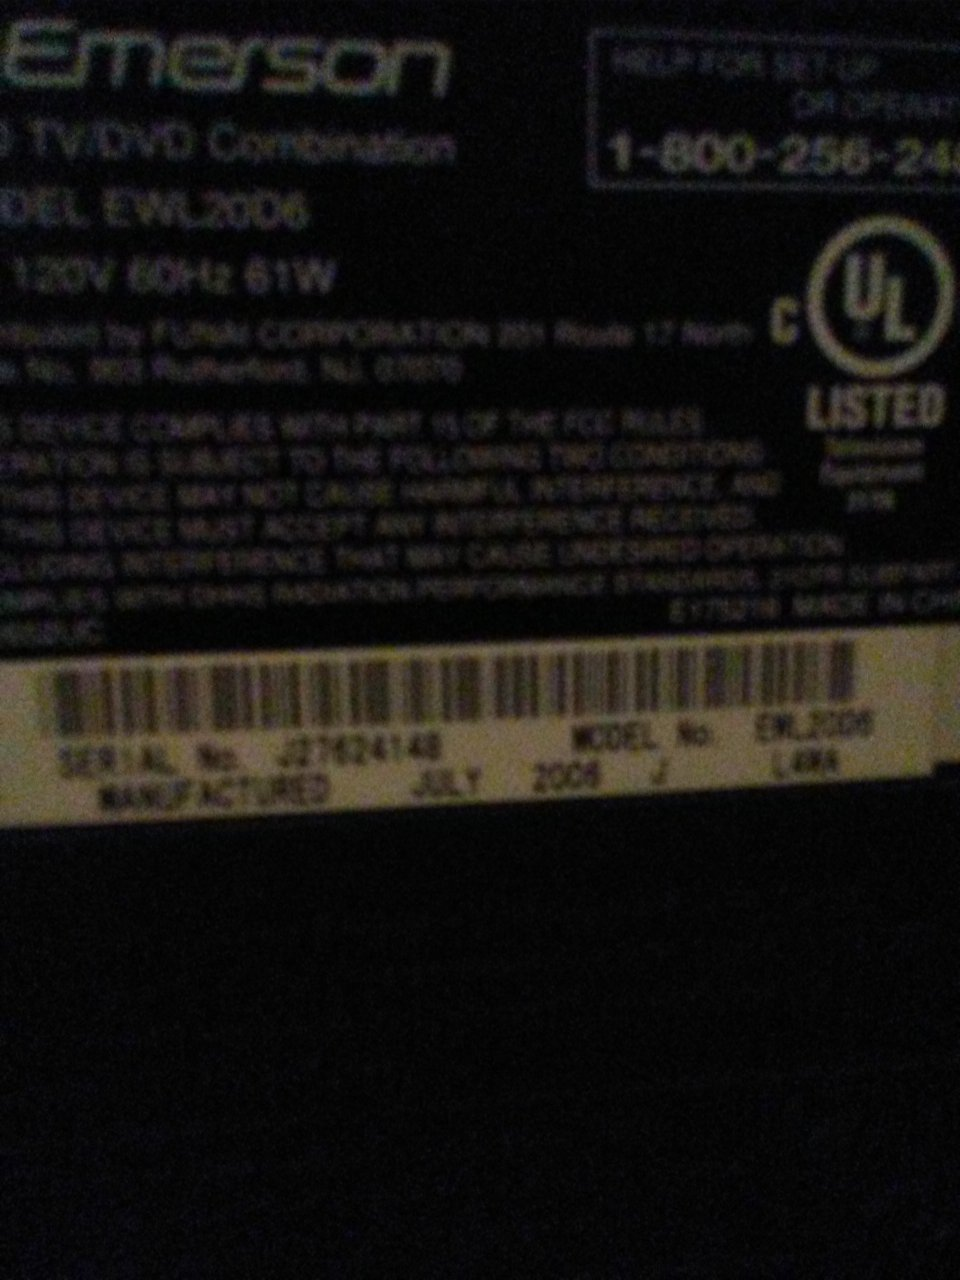 Emerson TV With DVD Player   DIY Forums